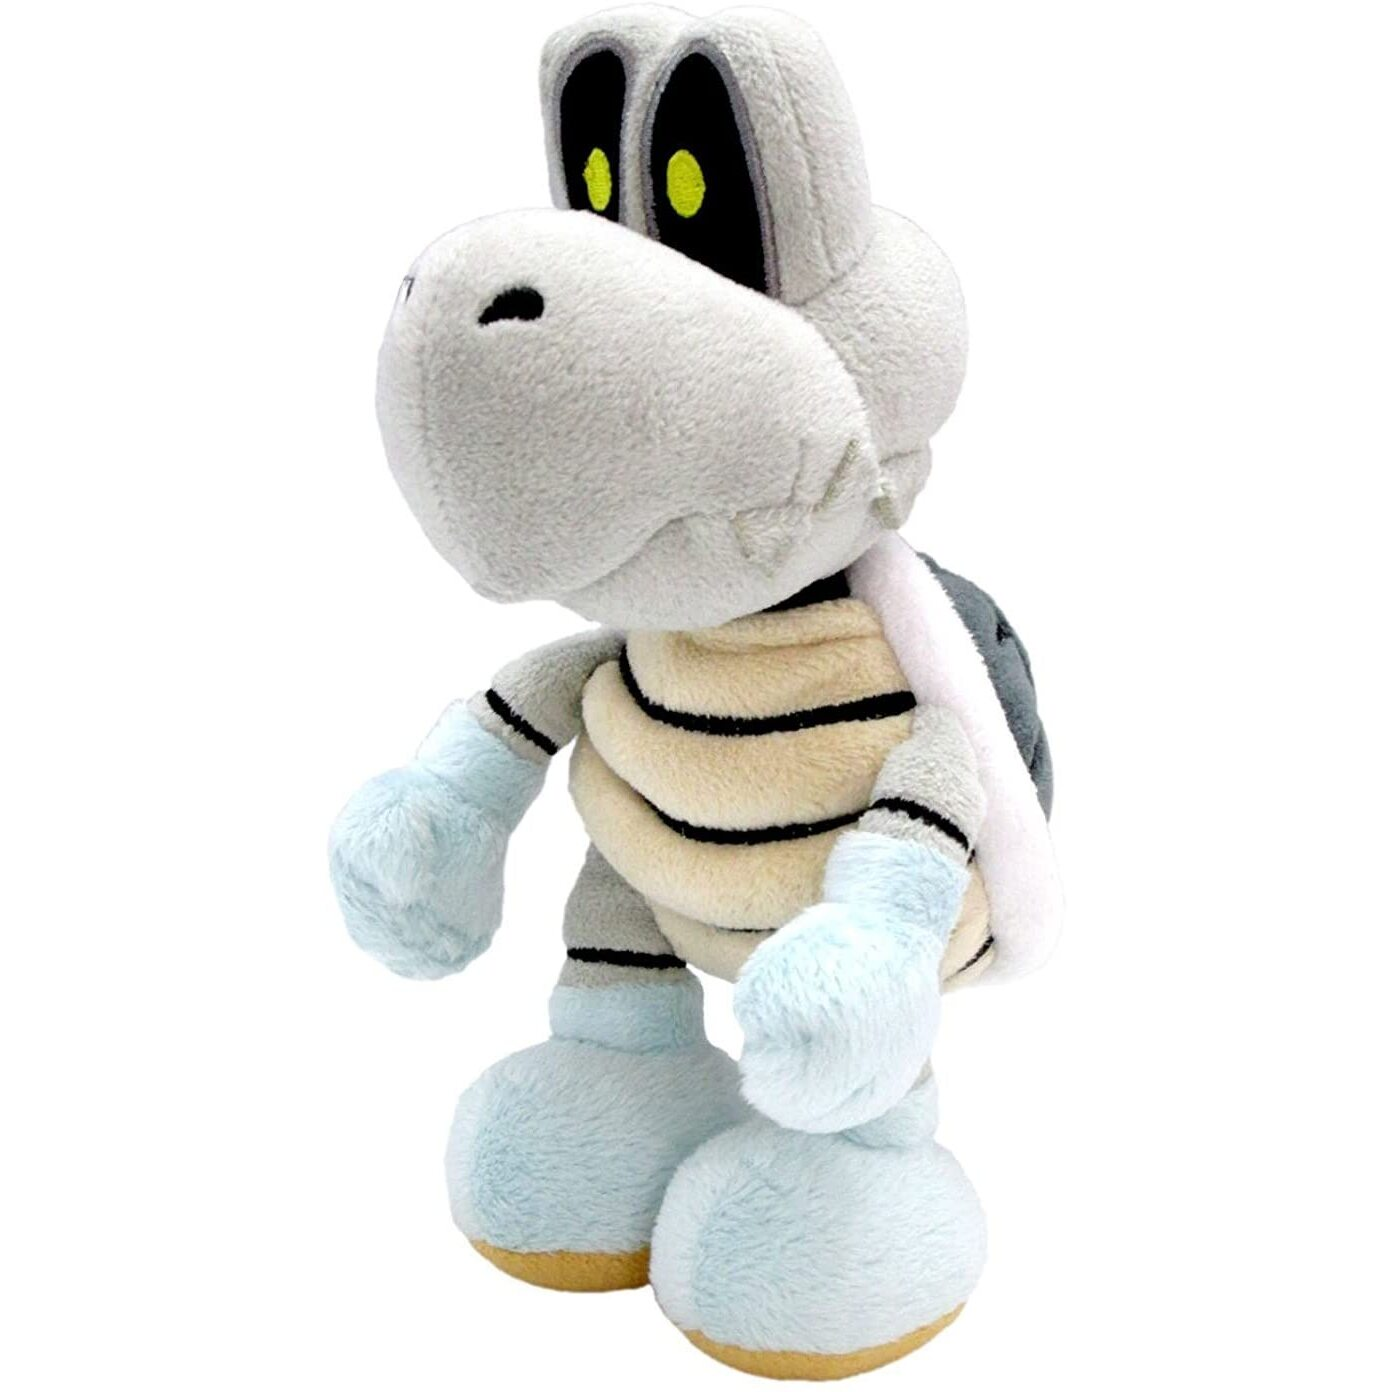 dry-bones-all-star-collection-plush